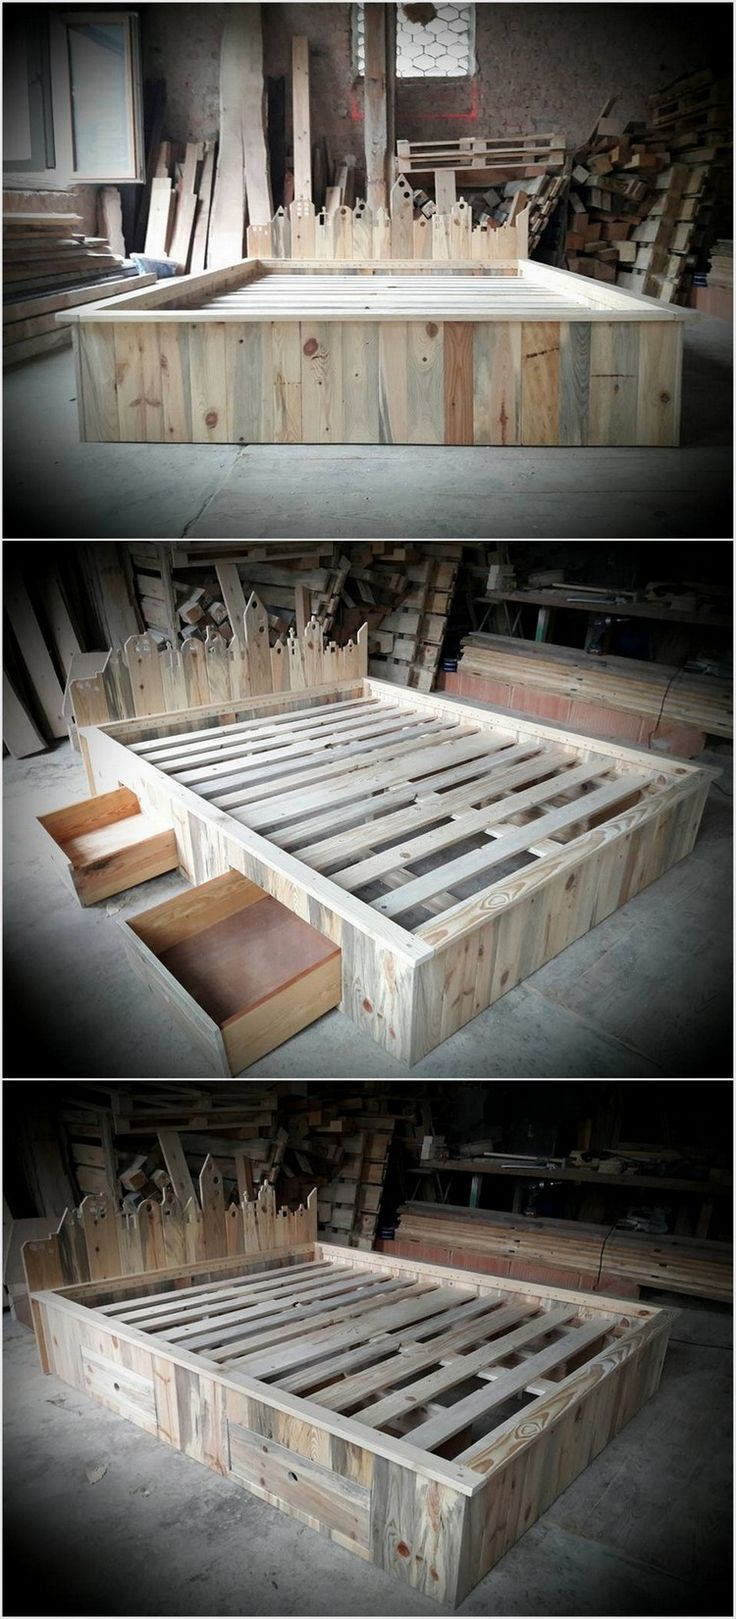 Single pallet bed frame - Best 25 Bed With Headboard Ideas Only On Pinterest Bed Frame With Headboard Navy Bed And Transitional Bed Frames